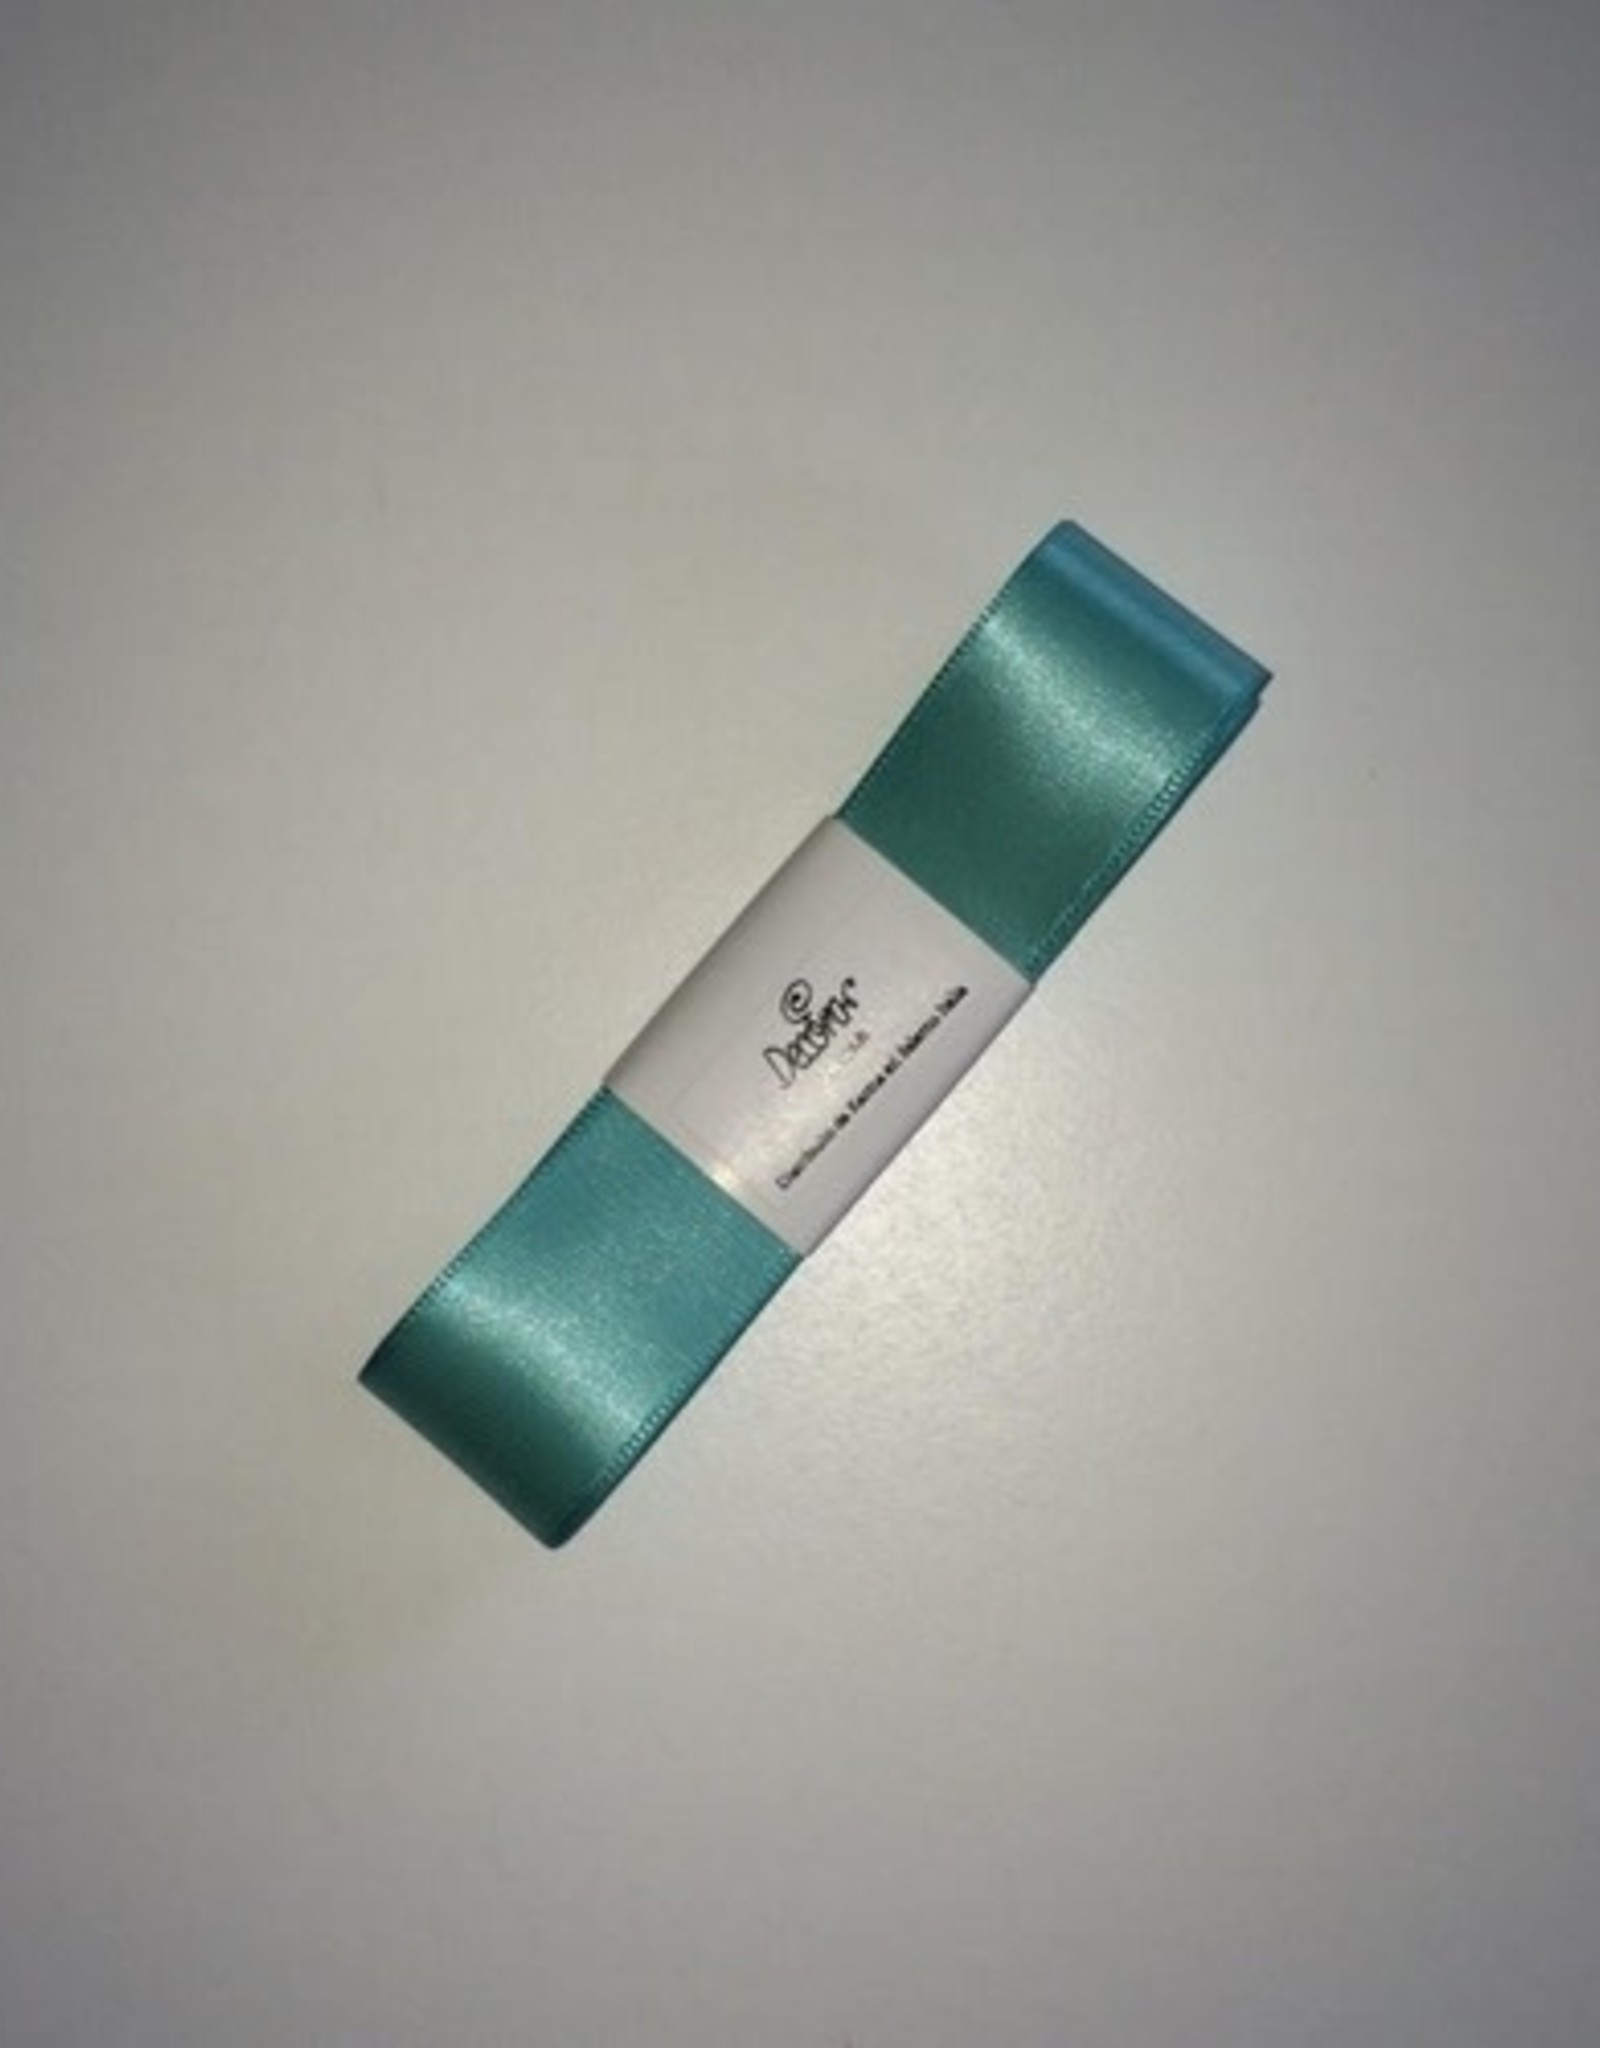 Double Satin Ribbon 25mm x 3mtr Teal Blue